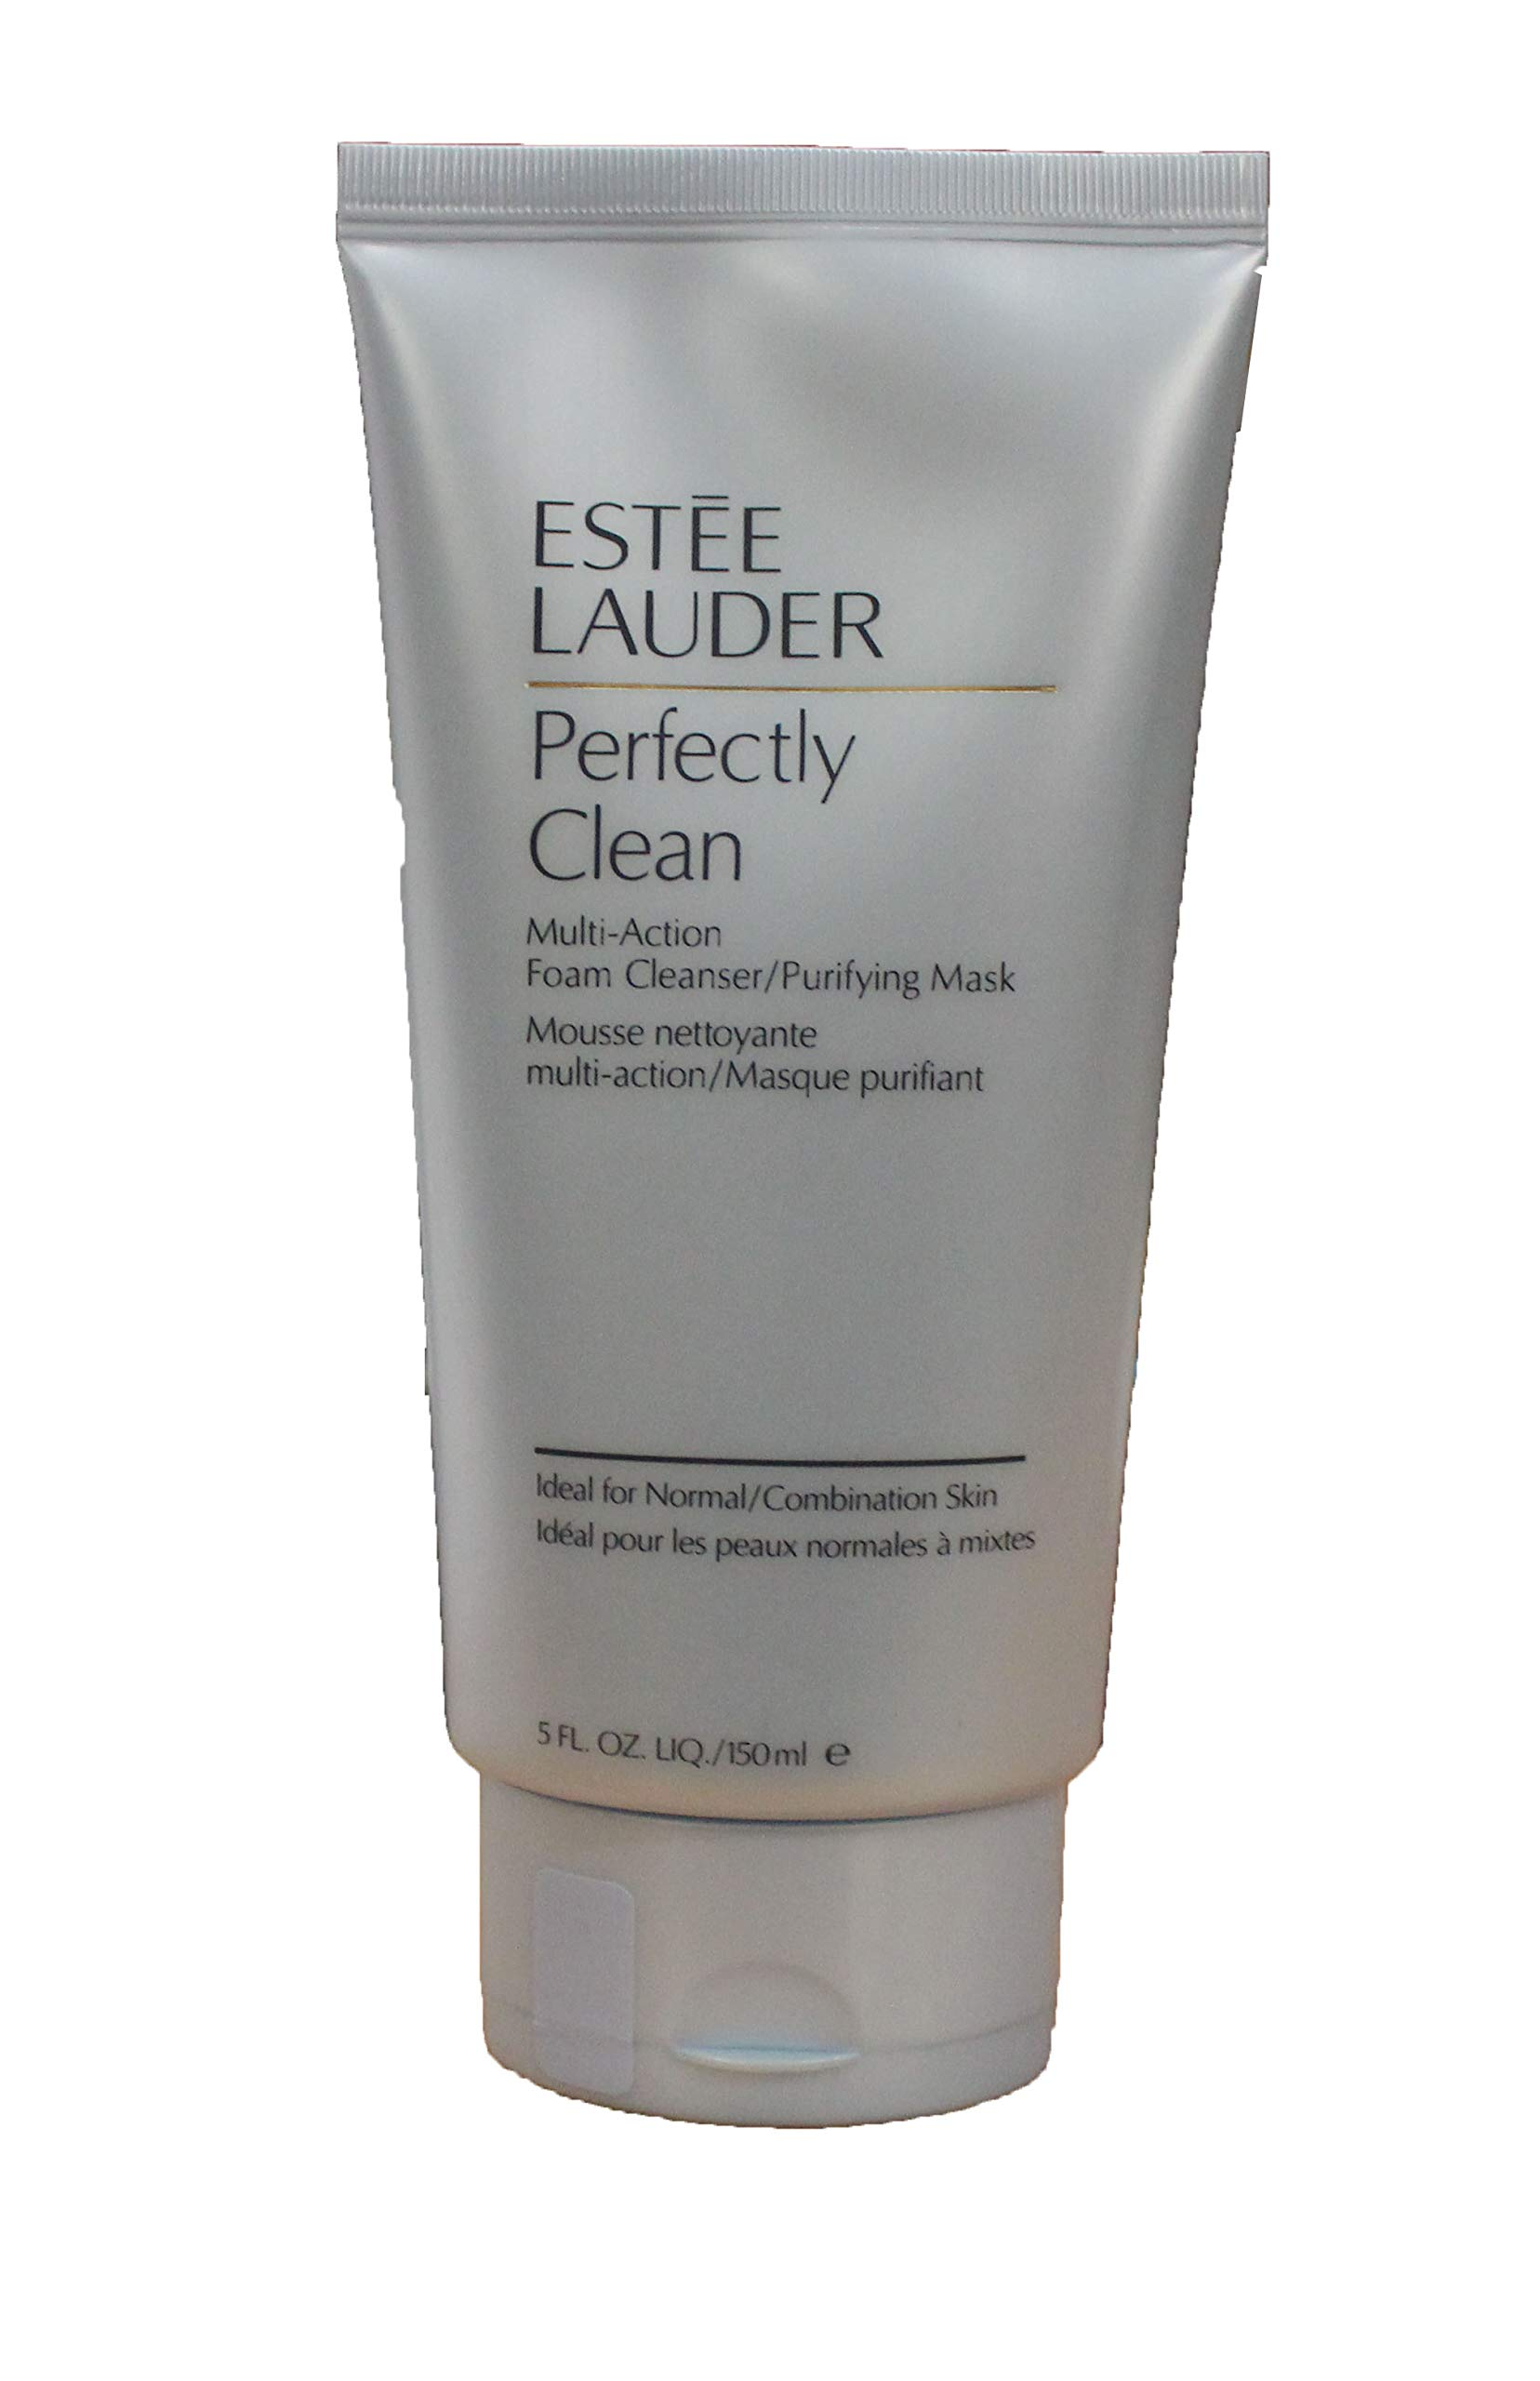 Estee Lauder Perfectly Clean Multi-action Foam Cleanser/Purifying Mask, 5 Ounce